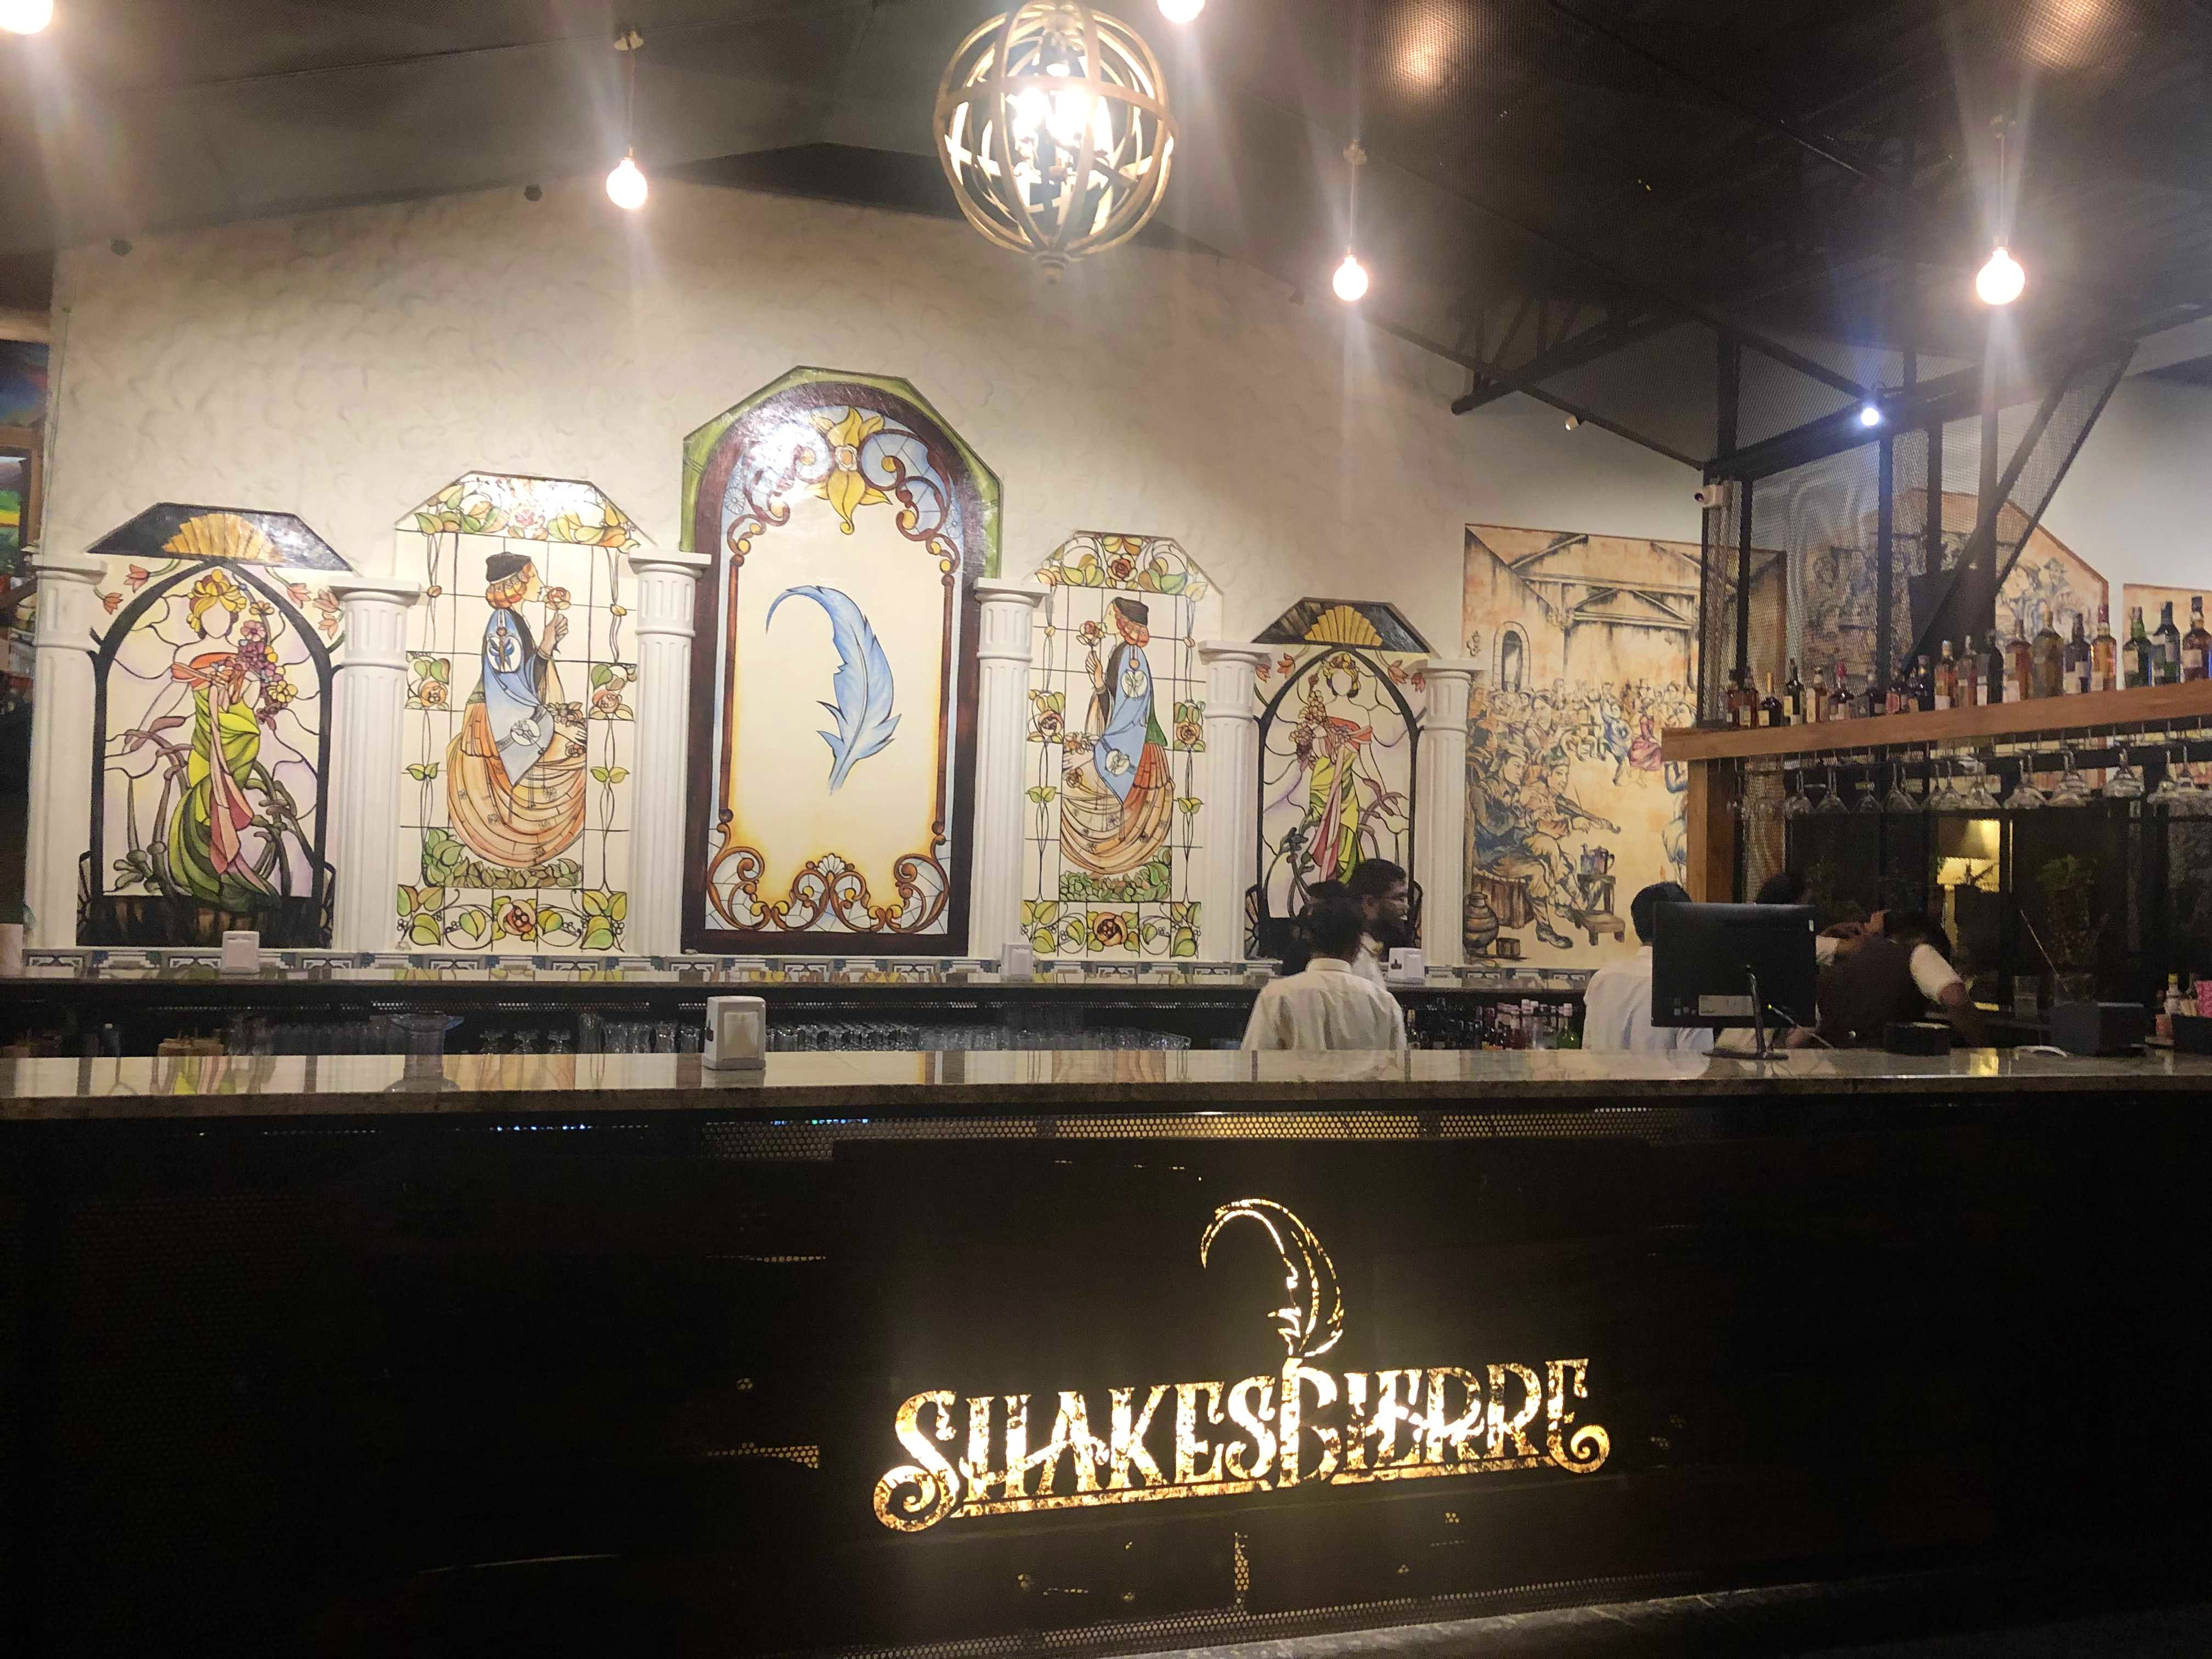 ShakesBierre - Bangalore's First Theme Based Brewery!